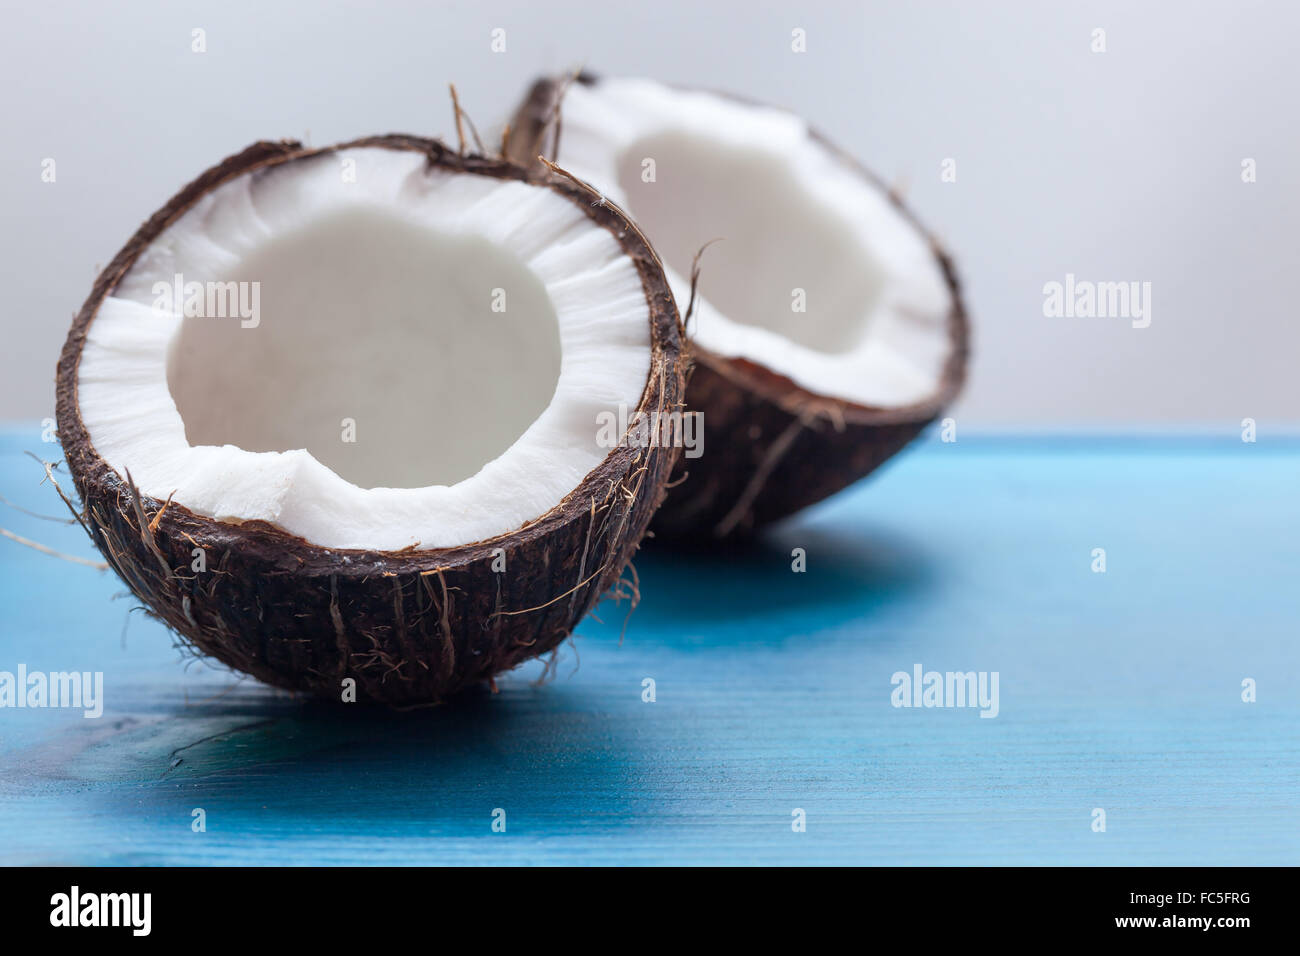 Delicious coconut with white coconut pulp - Stock Image